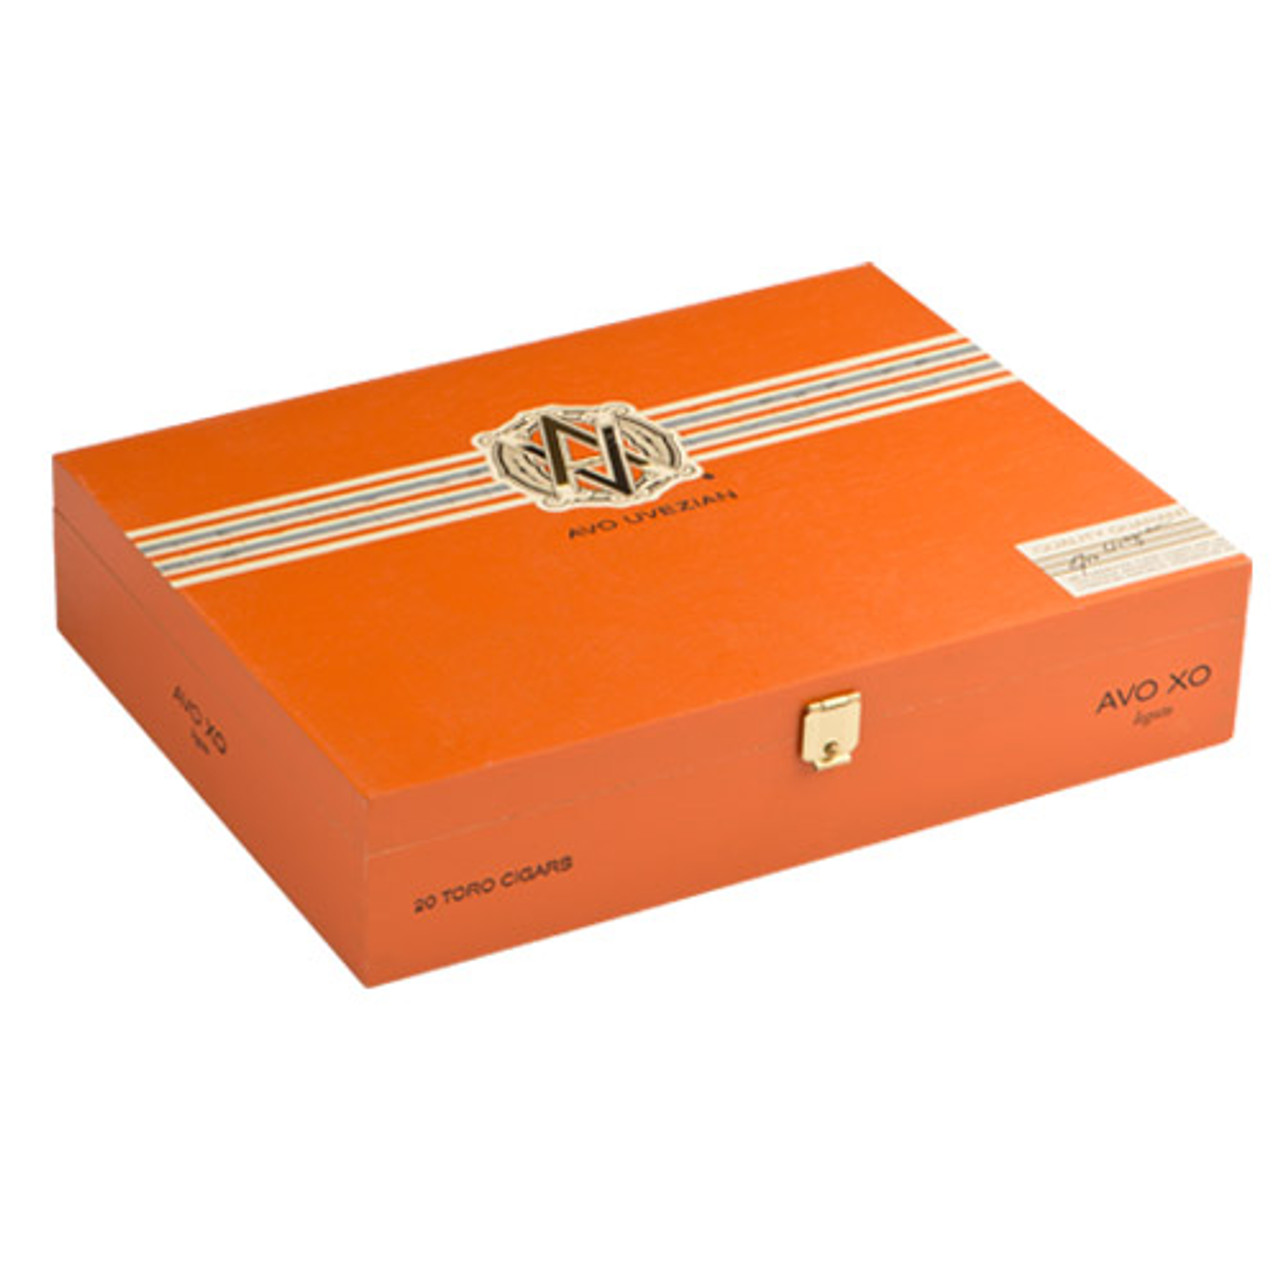 AVO XO Legato Tubo Cigars - 6 x 54 (Box of 20)